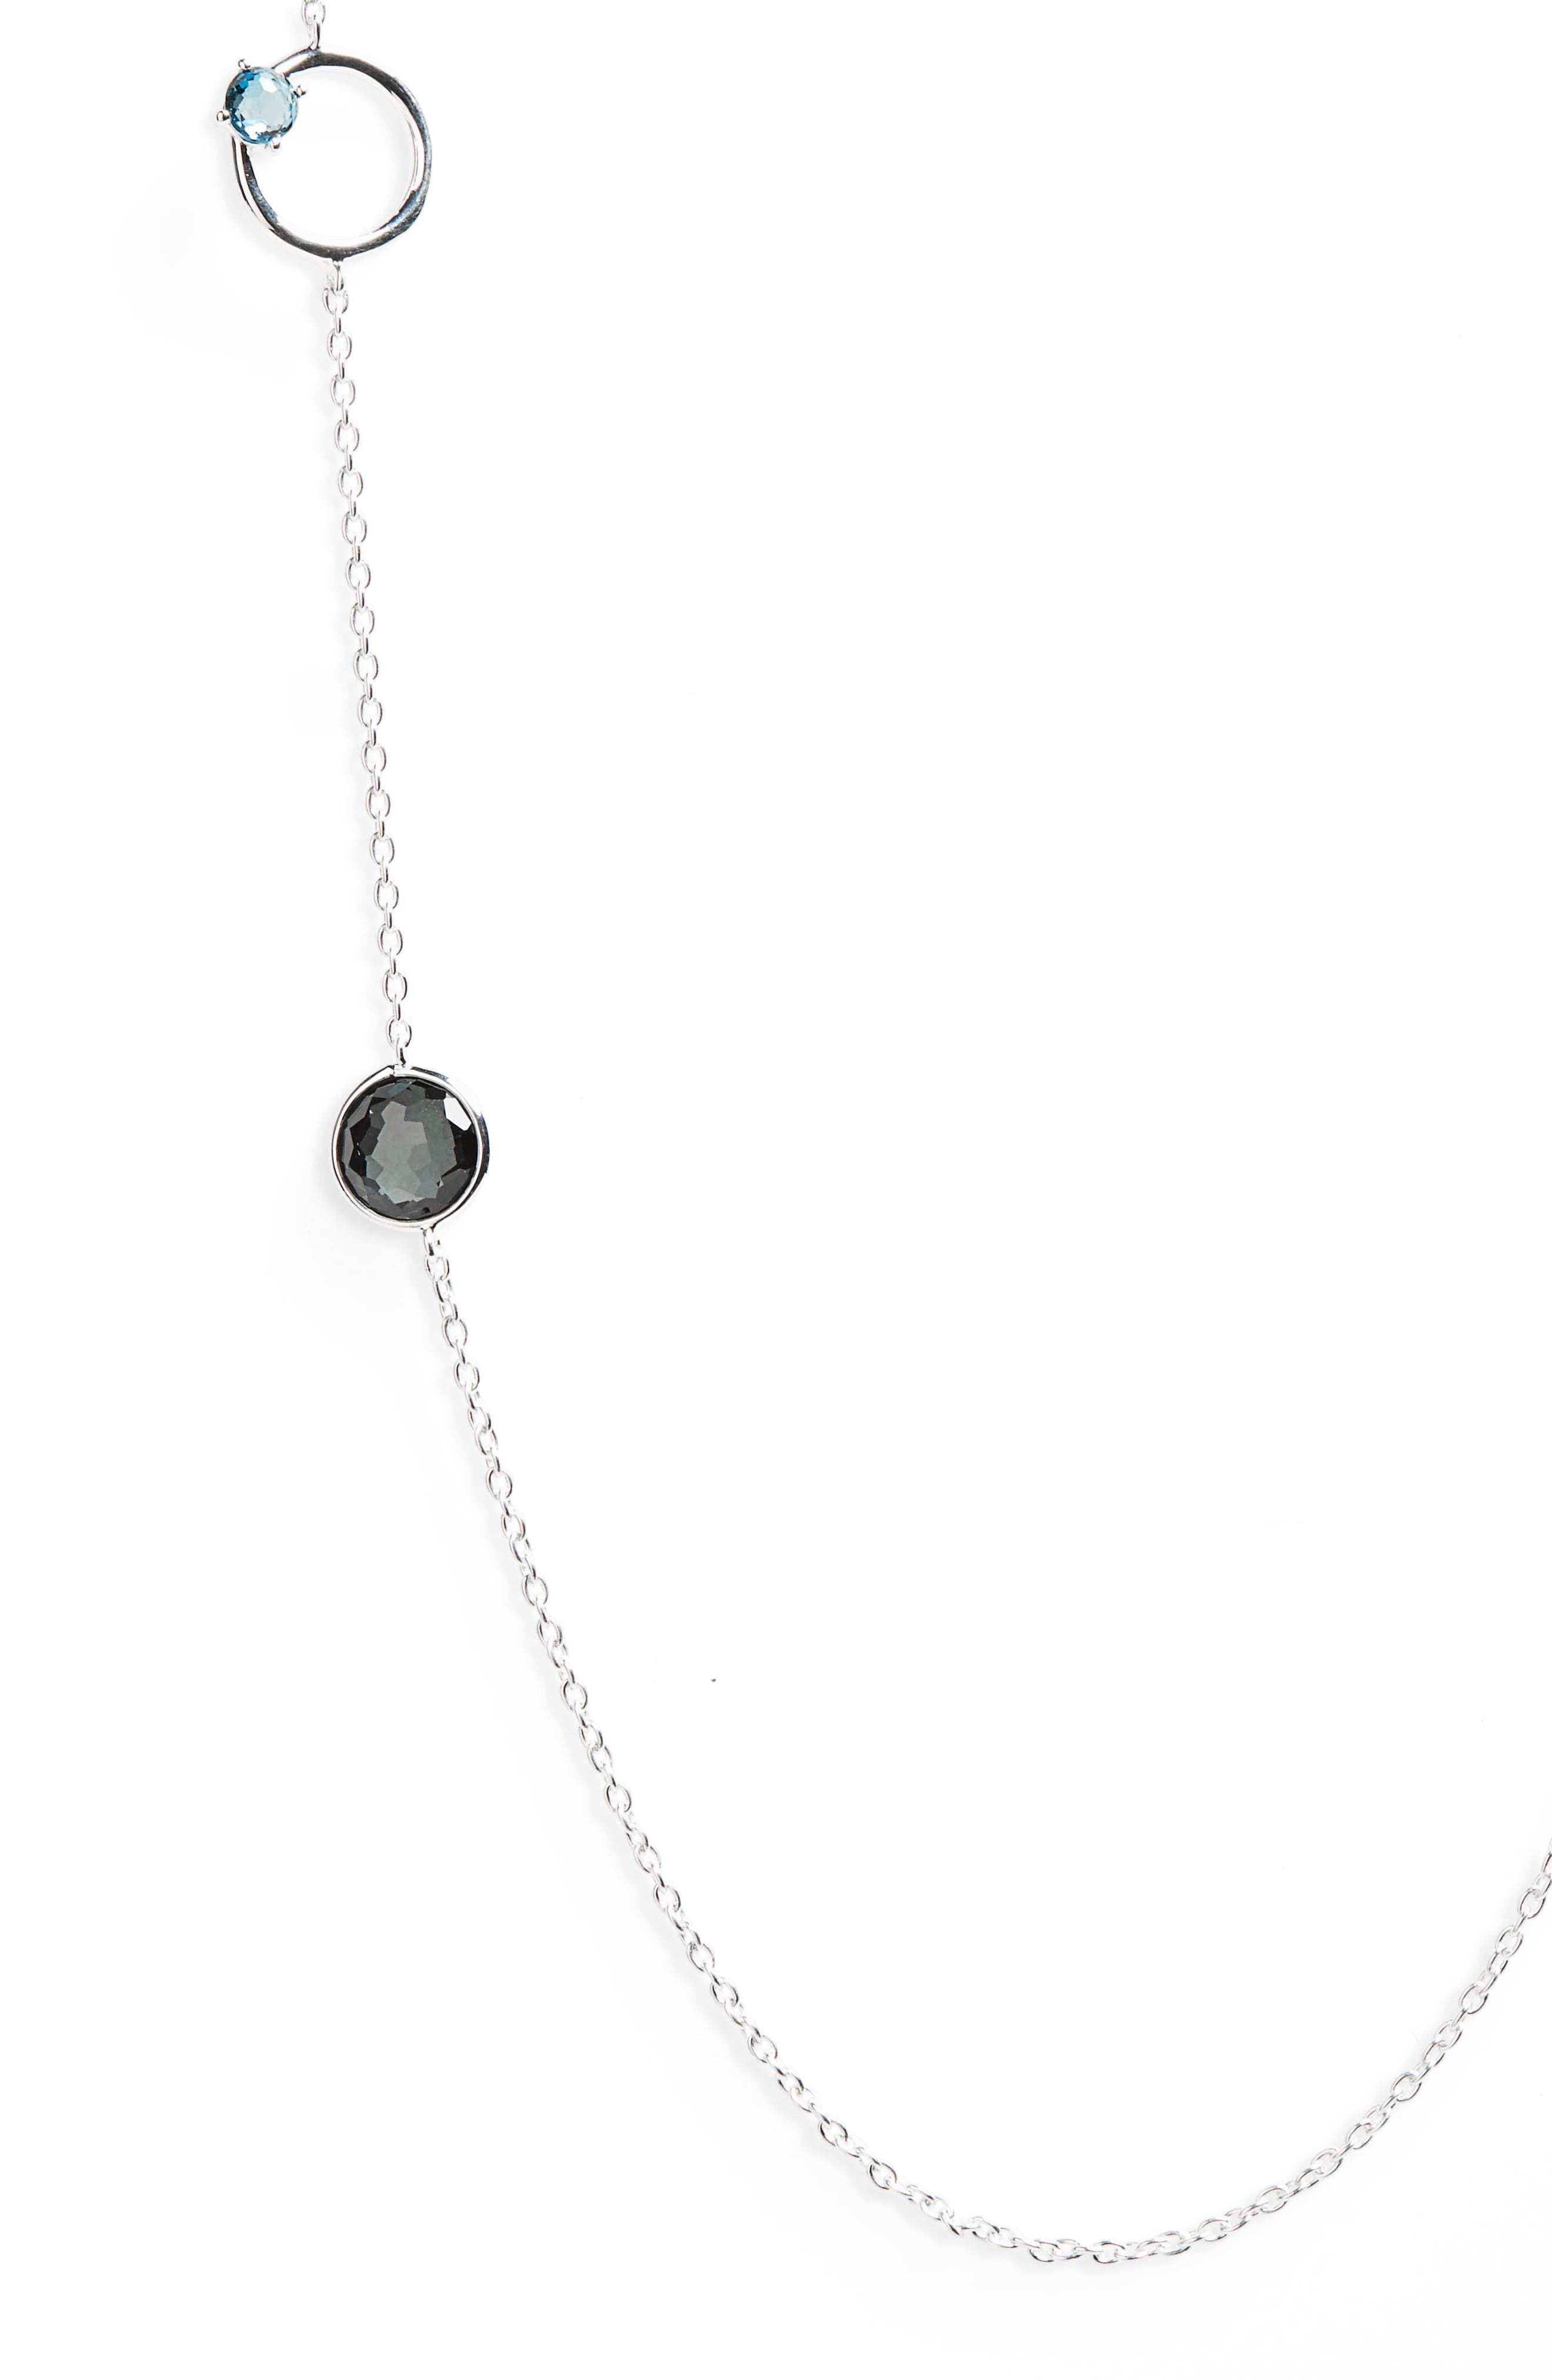 Rock Candy Strand Necklace,                             Alternate thumbnail 2, color,